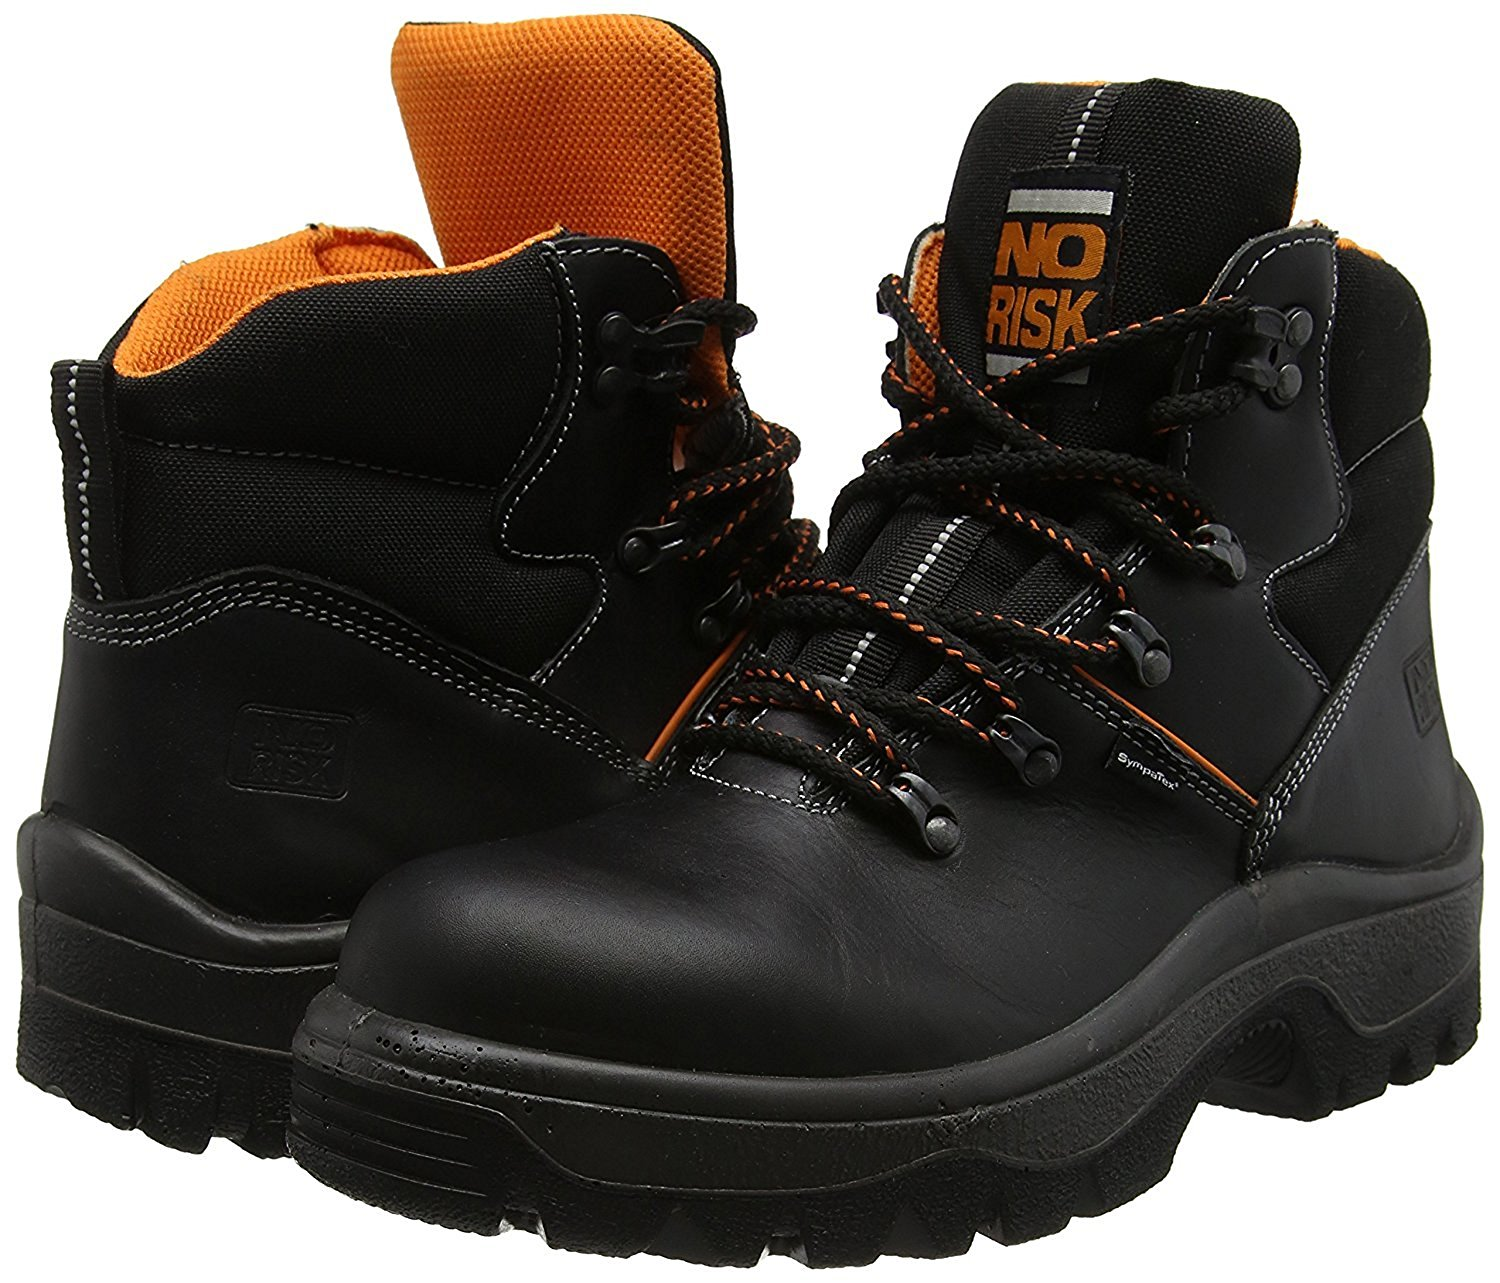 342bdf77c2d No Risk Franklyn Safety Boot Steel Toe Cap Waterproof S3